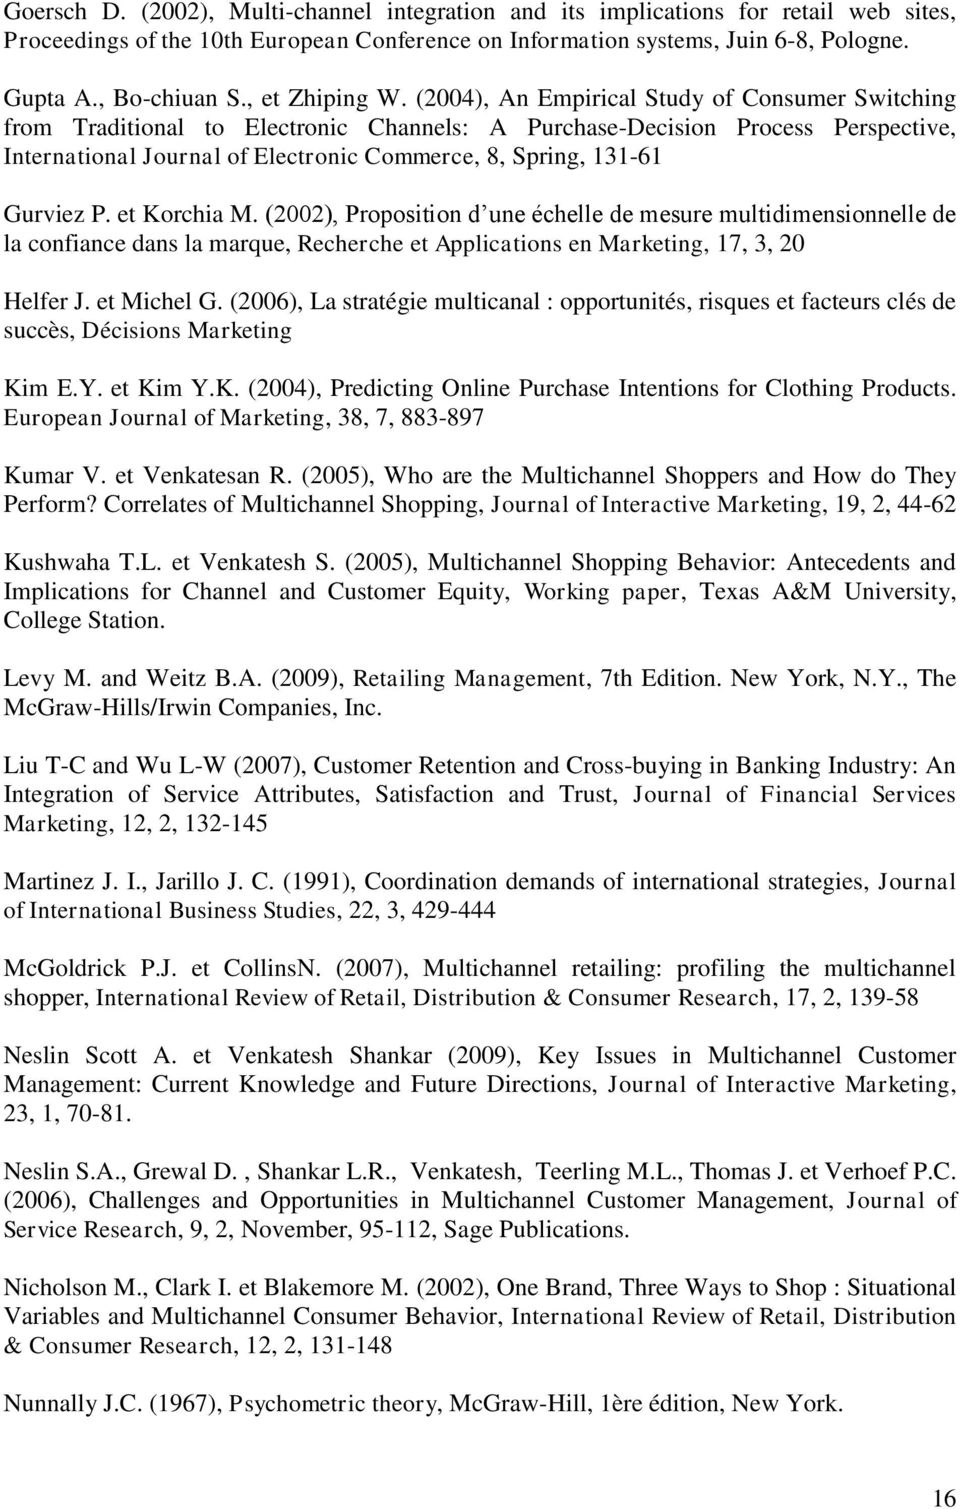 (2004), An Empirical Study of Consumer Switching from Traditional to Electronic Channels: A Purchase-Decision Process Perspective, International Journal of Electronic Commerce, 8, Spring, 131-61